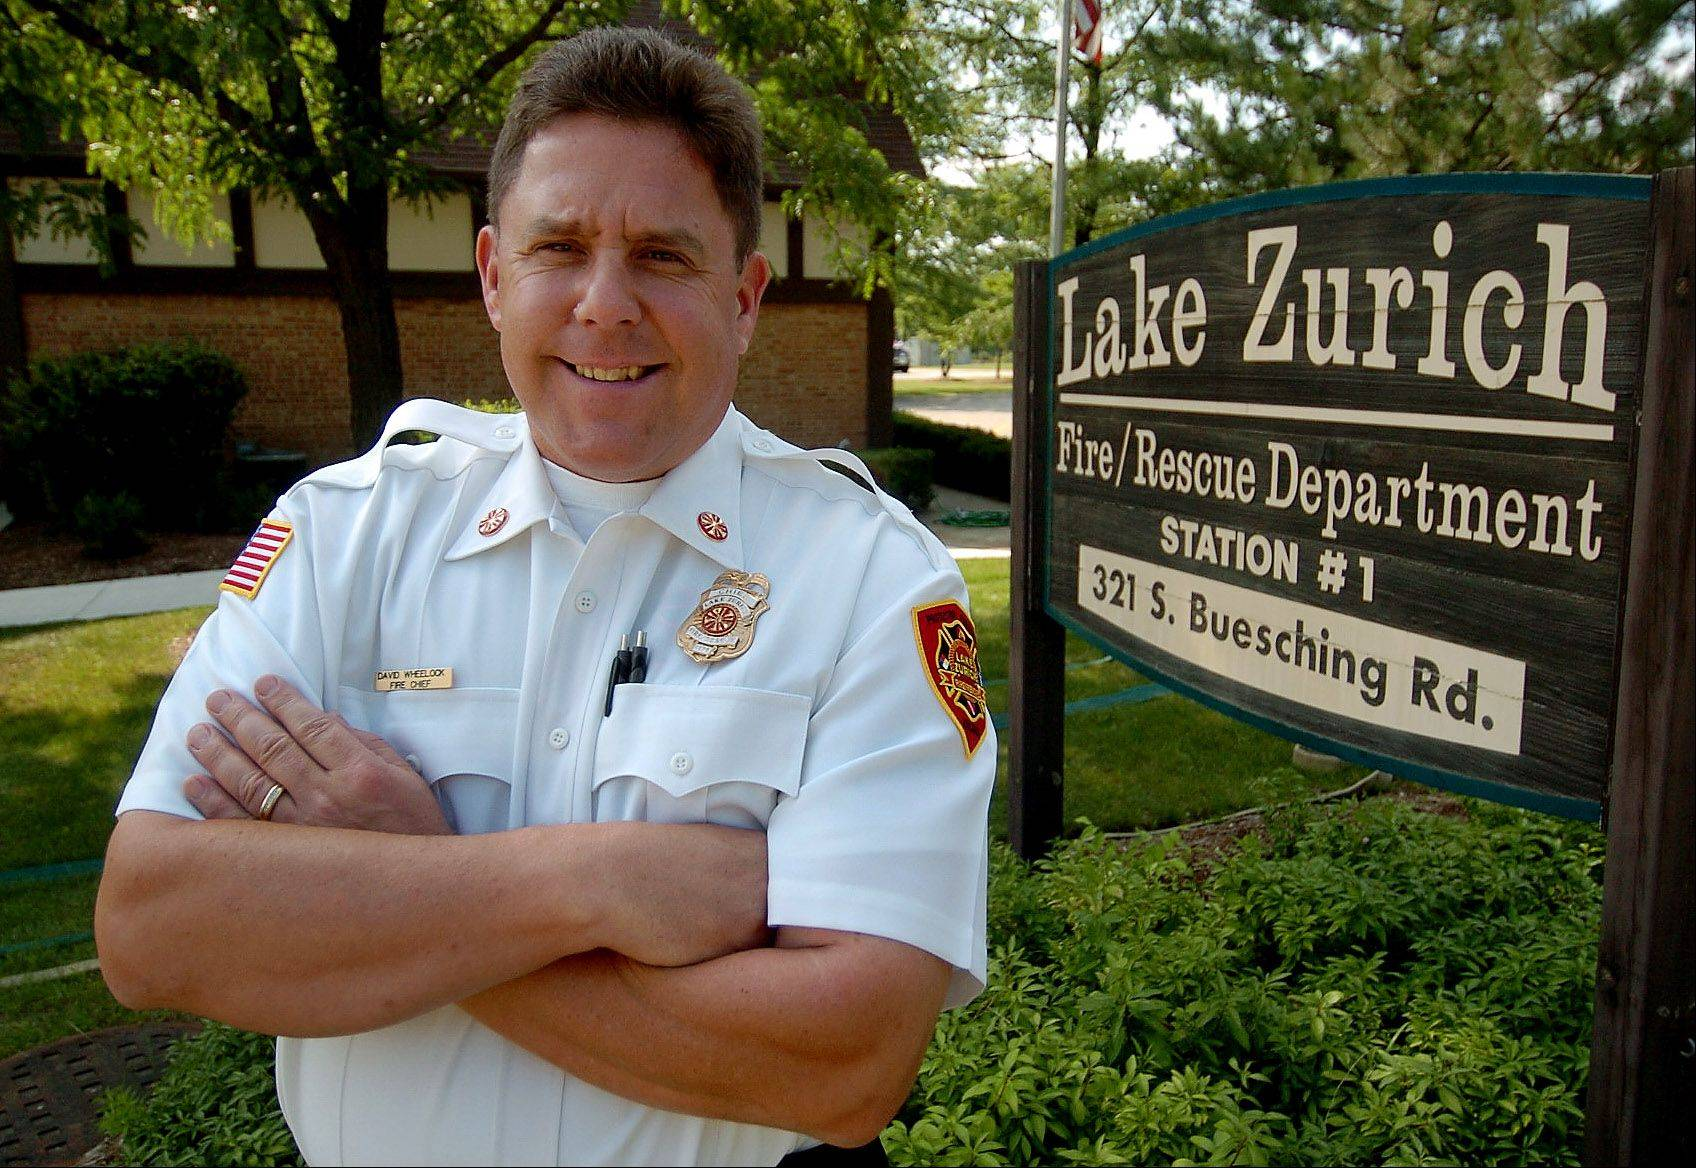 New Lake Zurich Fire Chief David Wheelock took the oath of office in a ceremony Monday. Wheelock, a department veteran, replaces former chief Terry Mastandrea, who retired in July.